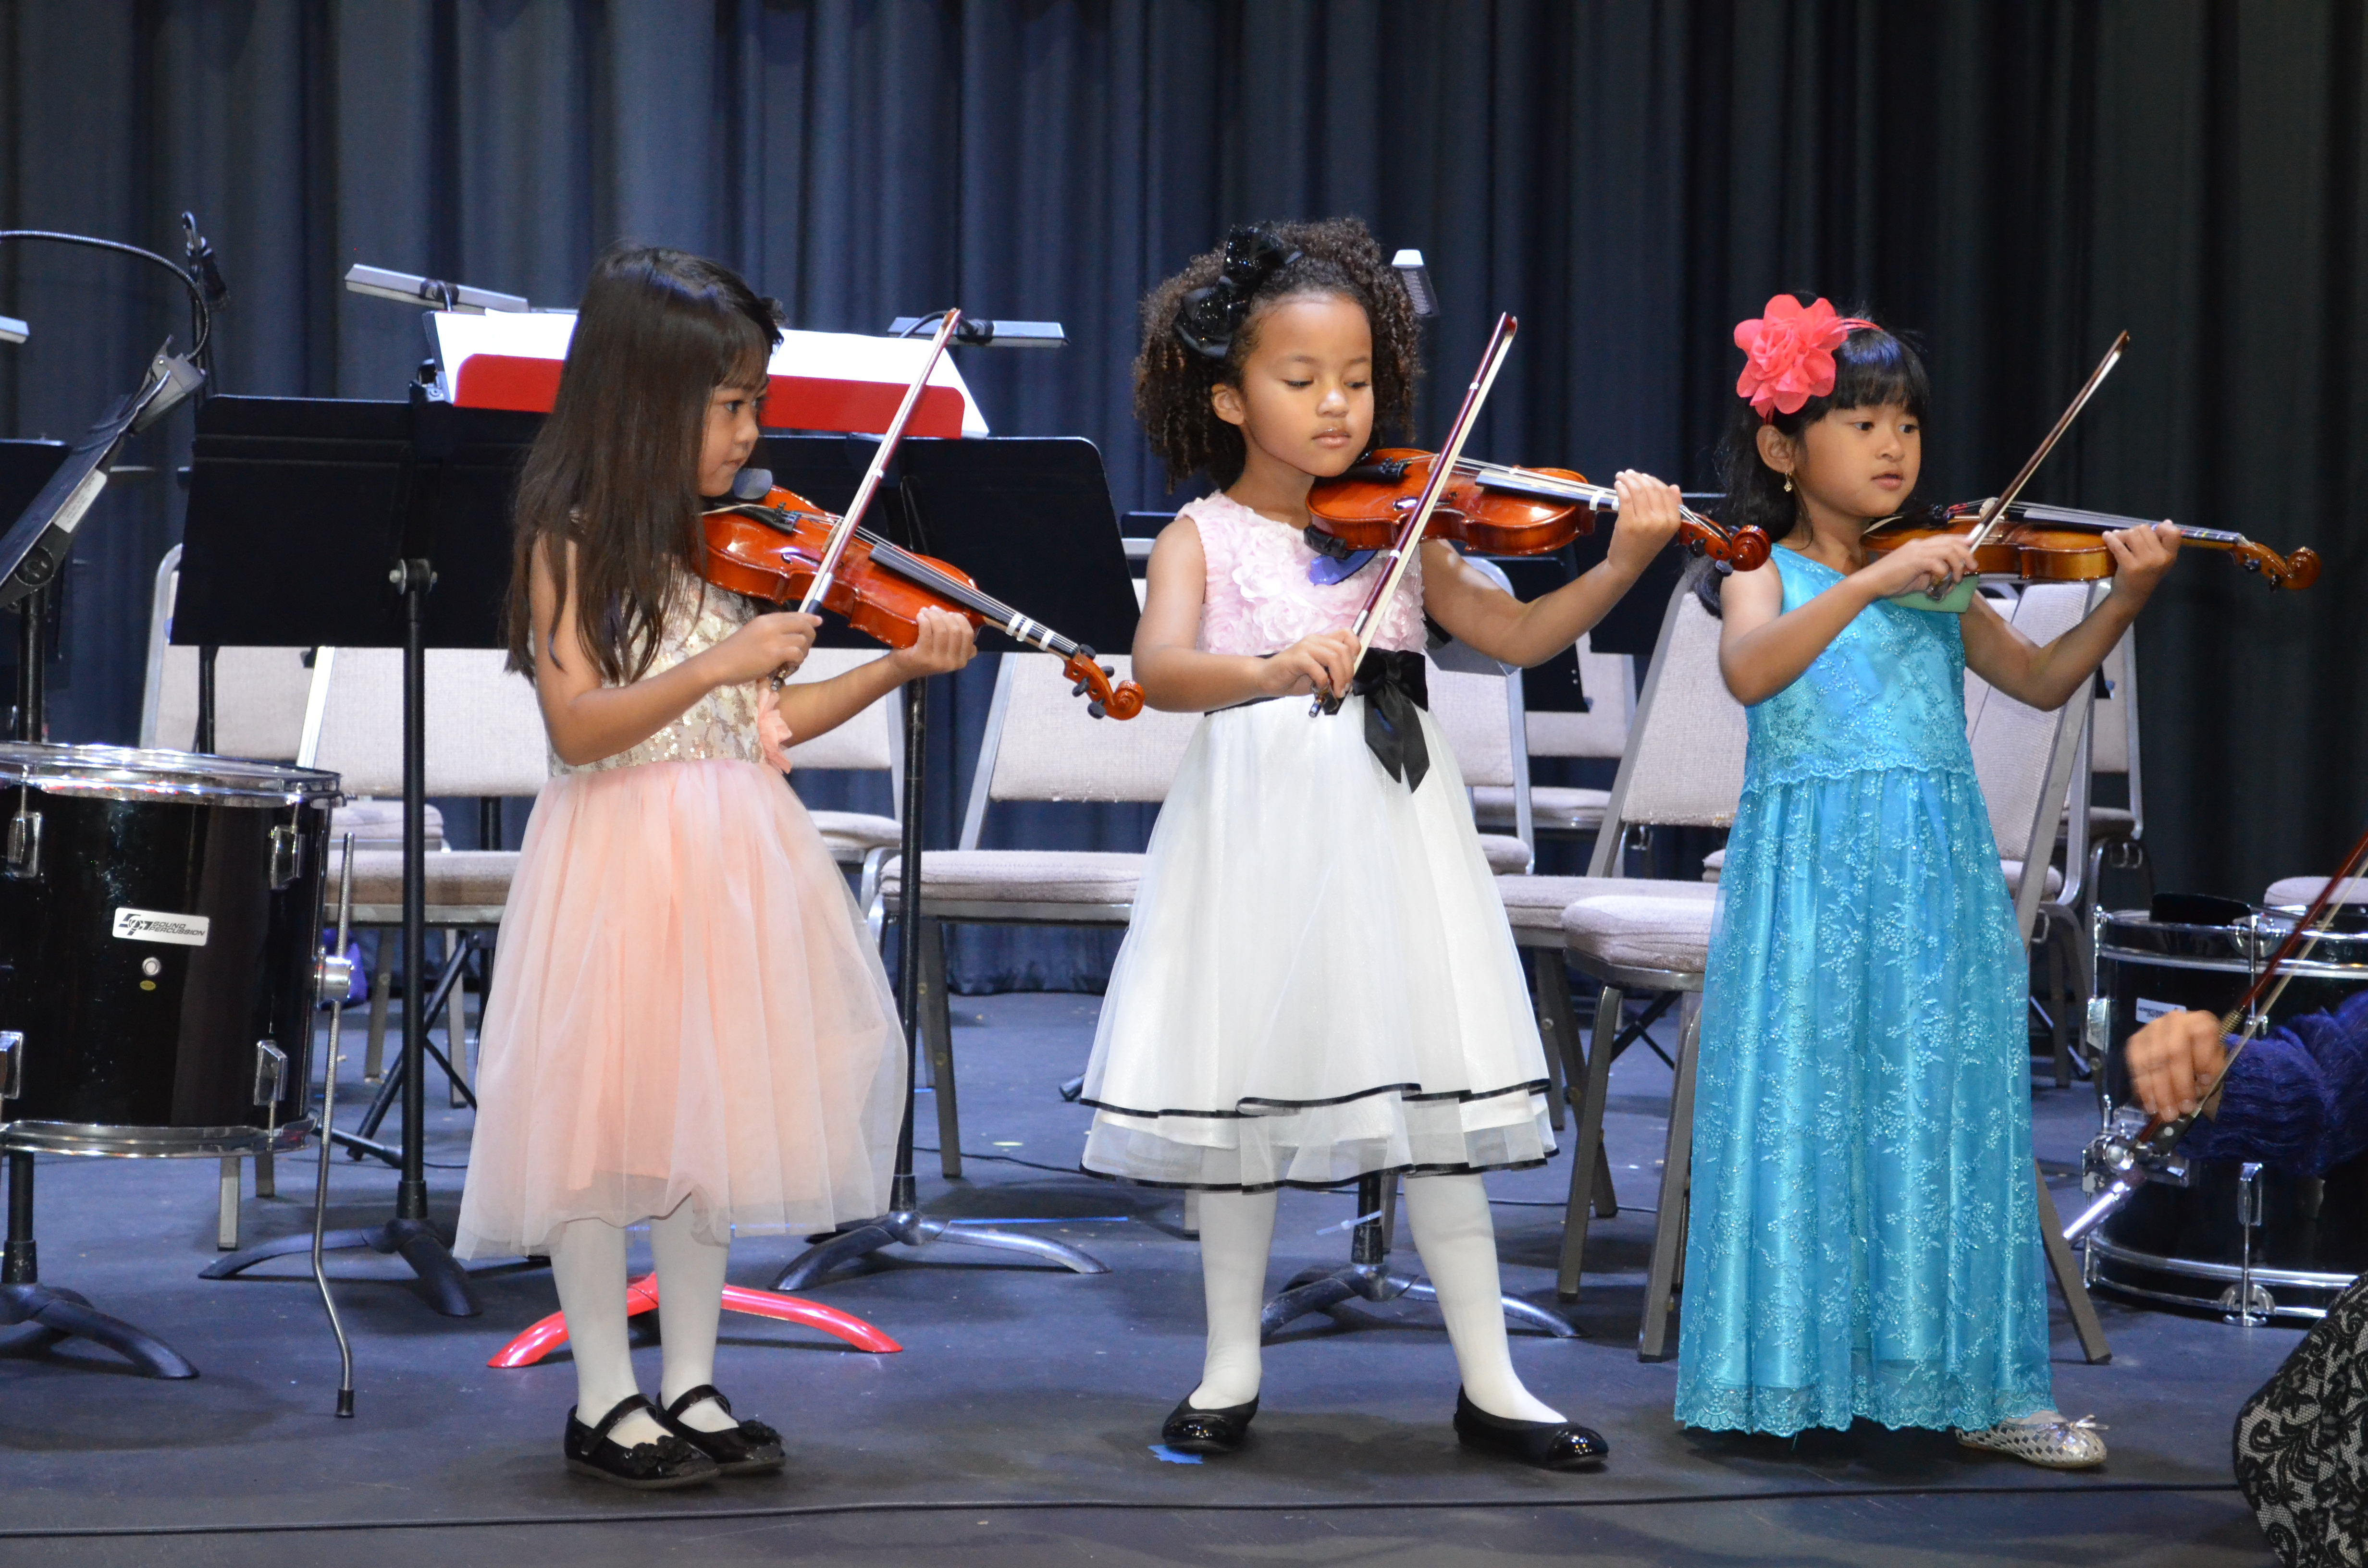 Help us provide the children of Los Angeles with the gift of the arts.